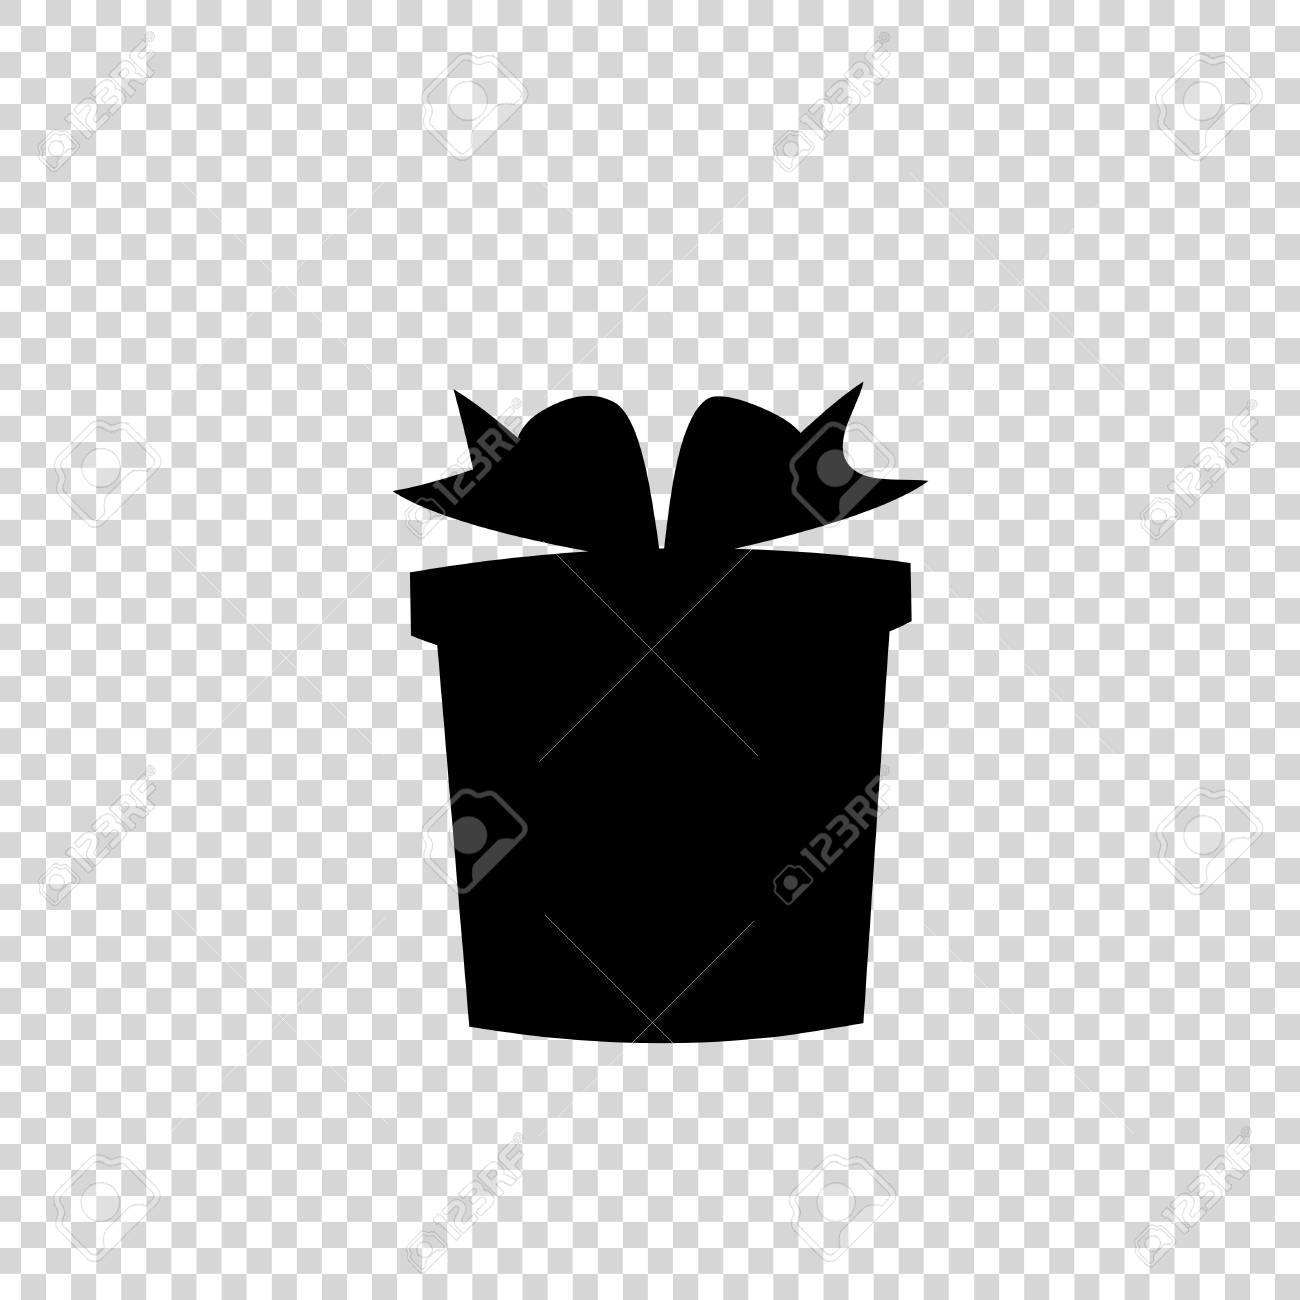 Vector Black Silhouette Of Bow Wrapped Gift Box On Transparent Royalty Free Cliparts Vectors And Stock Illustration Image 117006971